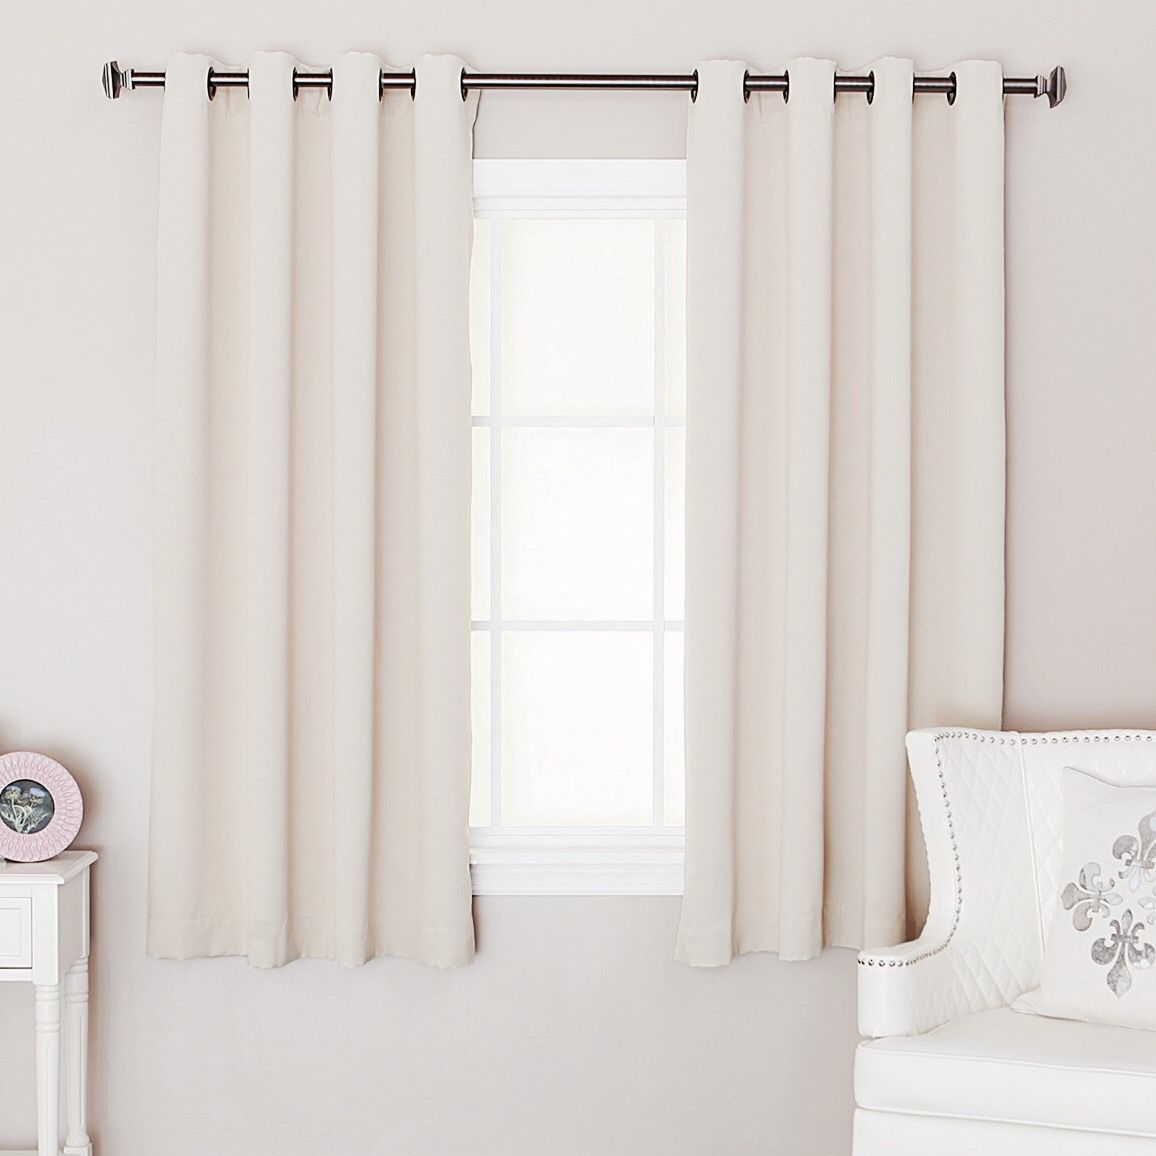 Curtains Designs For Small Windows